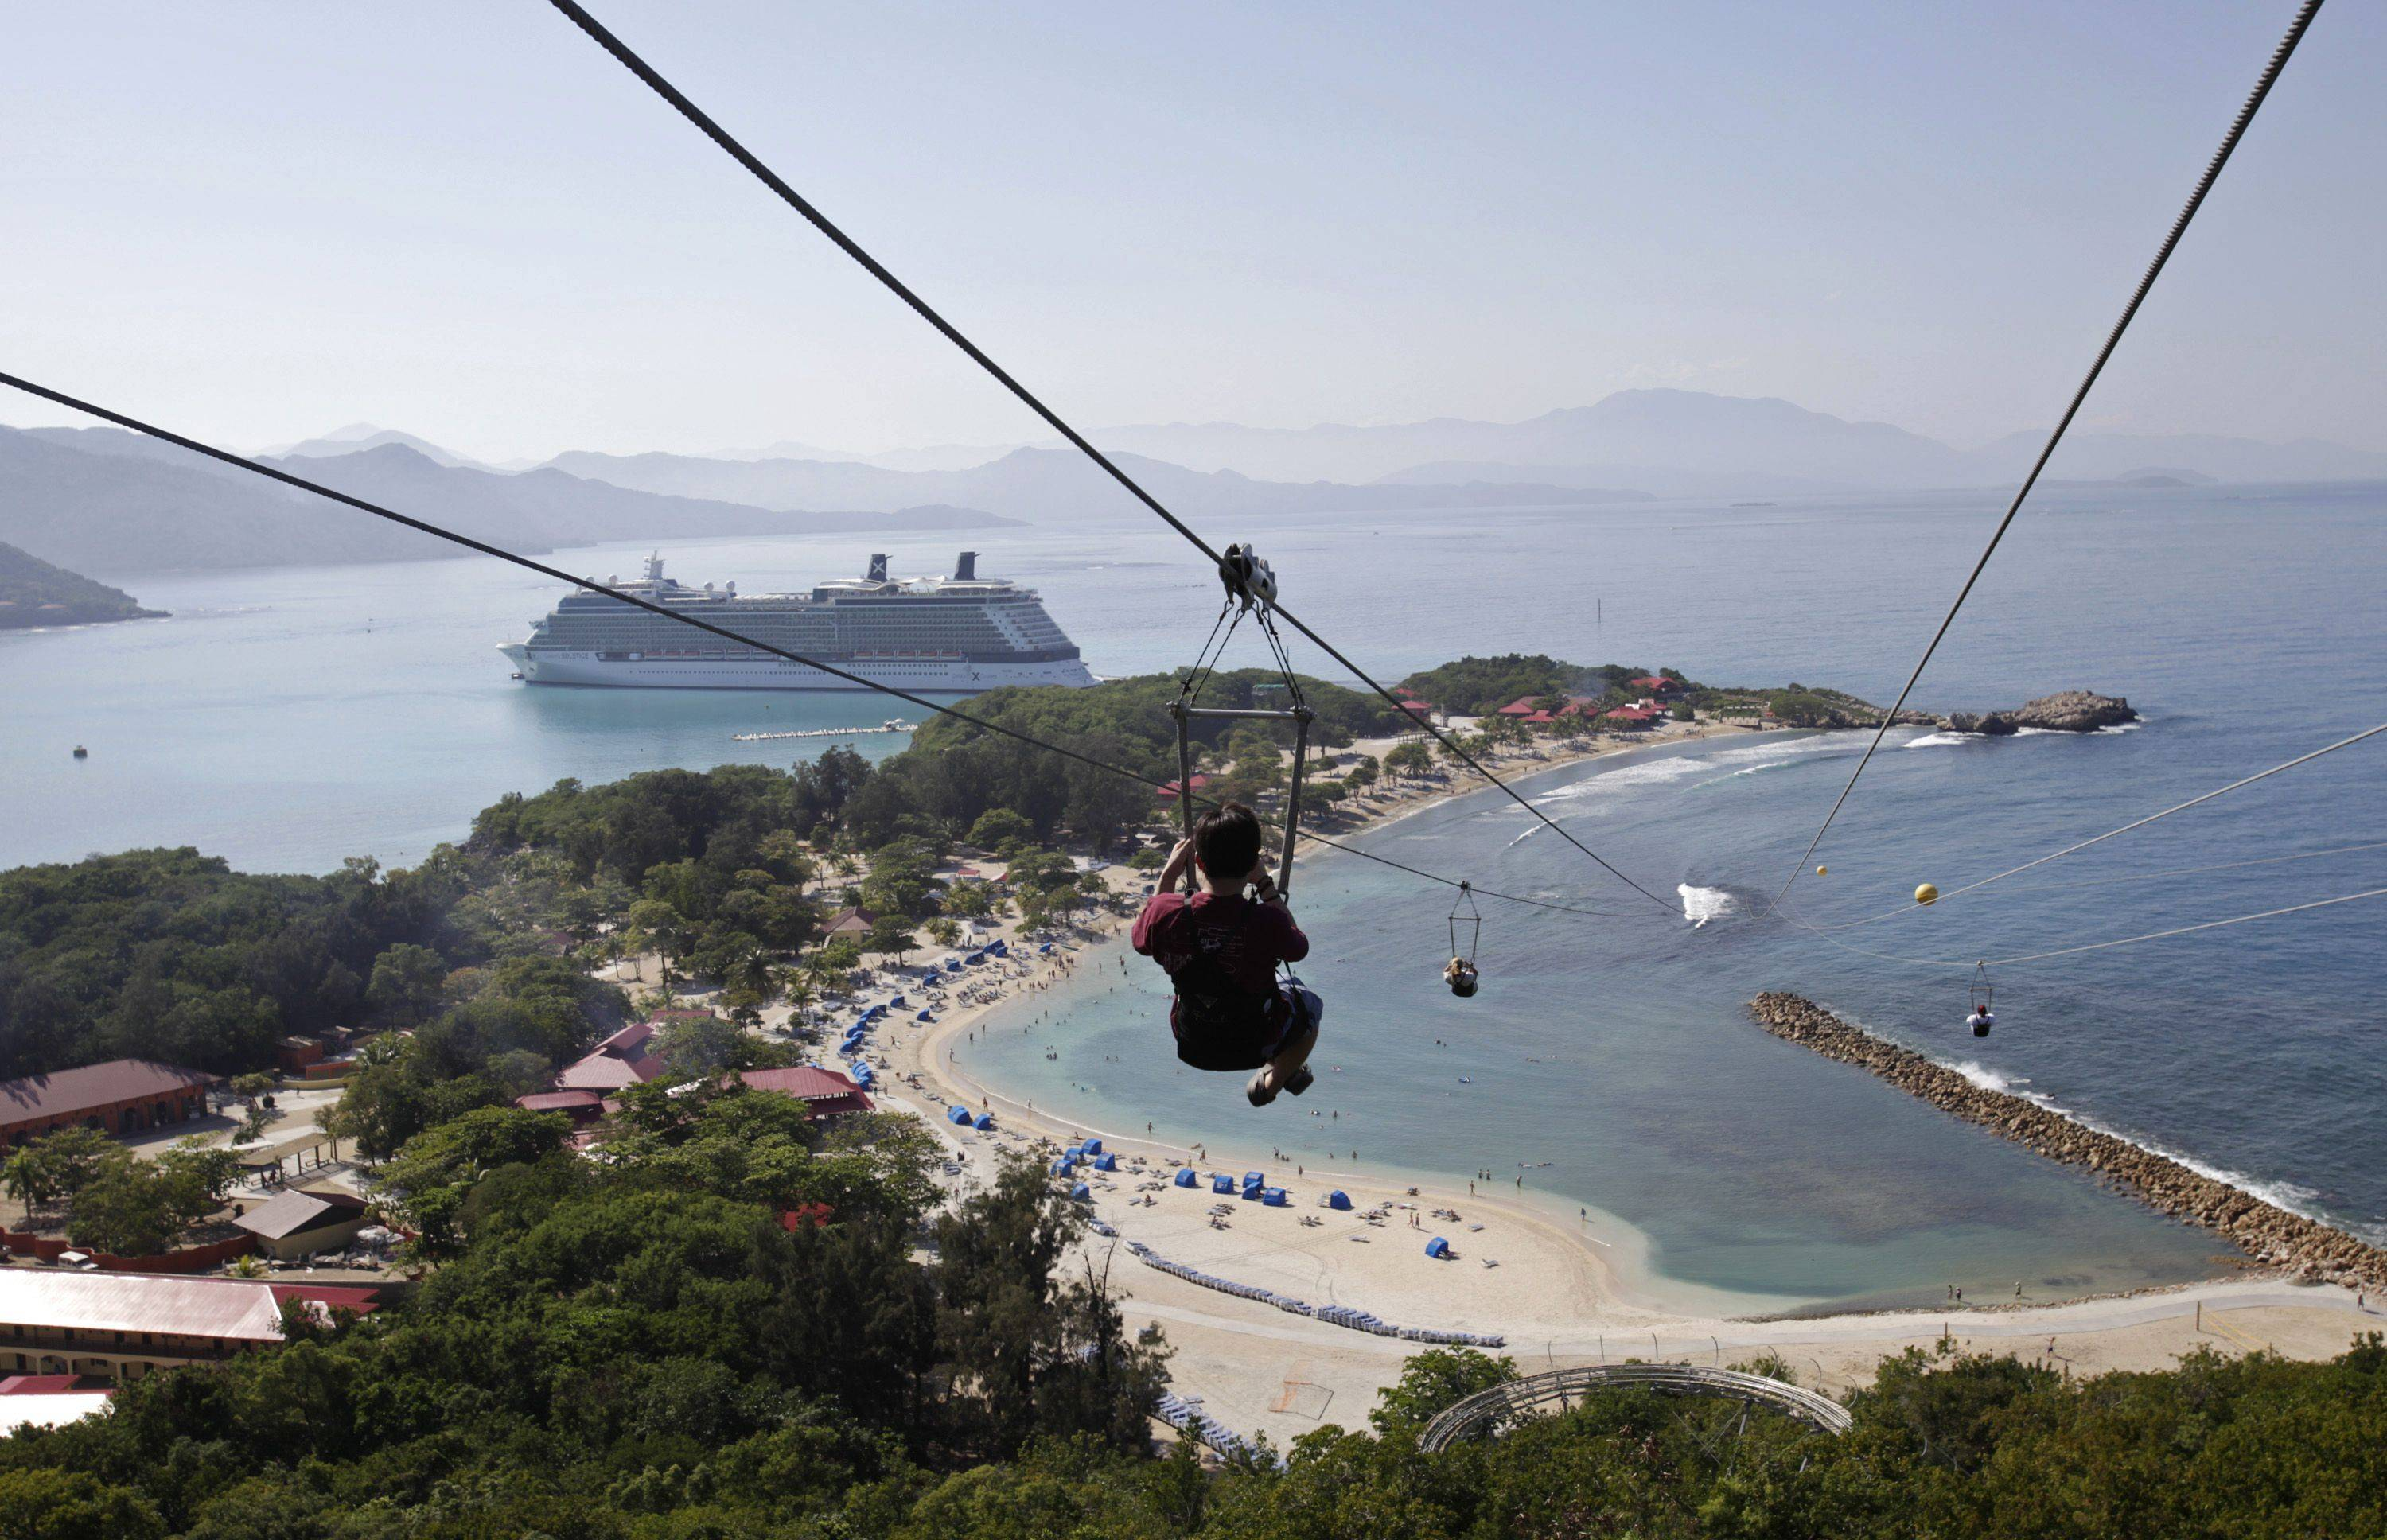 Passengers from the Celebrity Cruises ship Solstice zipline in Labadee, Haiti, Friday, Jan. 22, 2010. Cruise ships continued to stop at the Labadee resort after a 7.0-magnitude earthquake struck Haiti on Jan. 12.